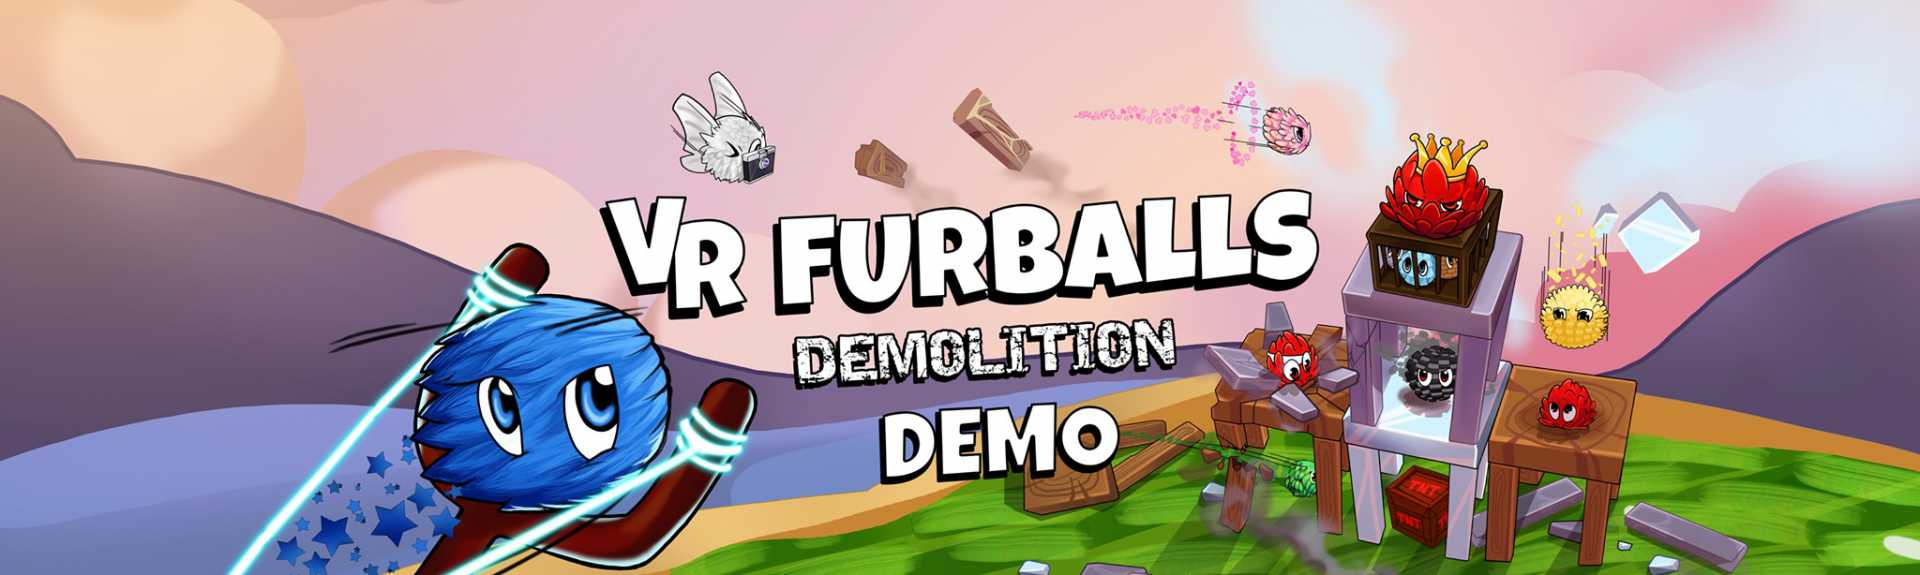 VR Furballs - Demolition Demo